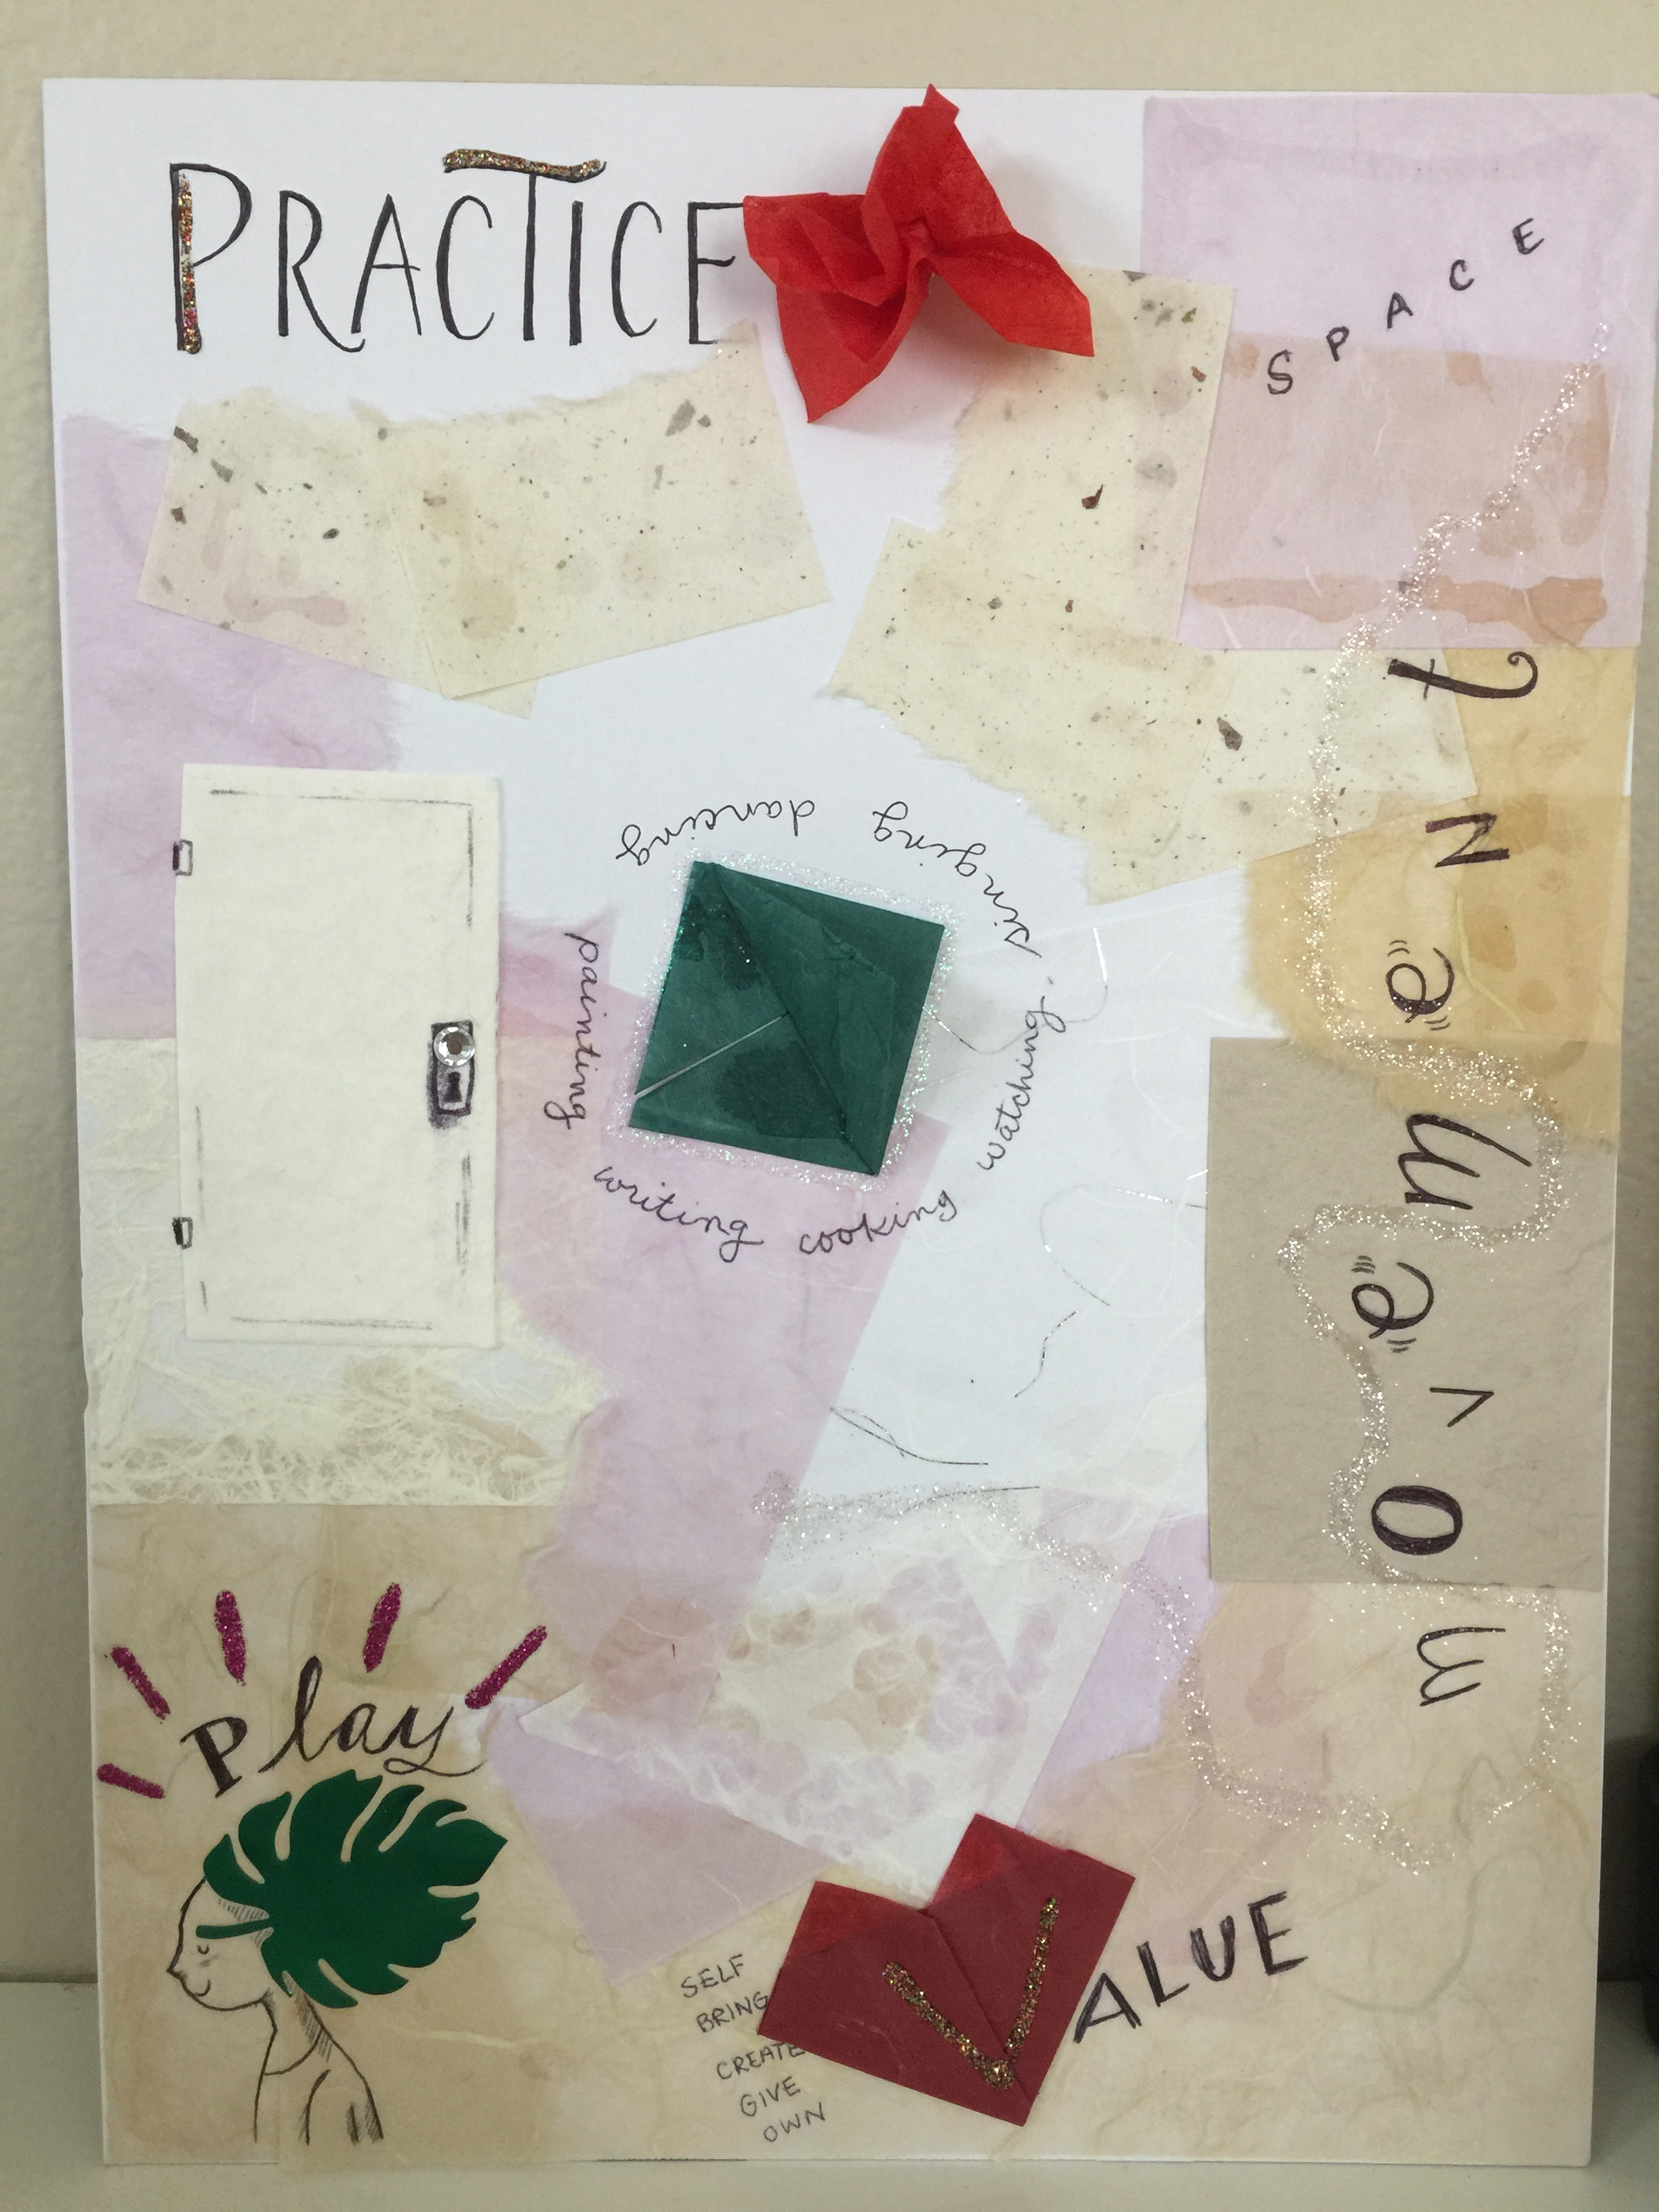 My current vision board. Looks different than any other board I've made- no items, no things, just a call to practice.